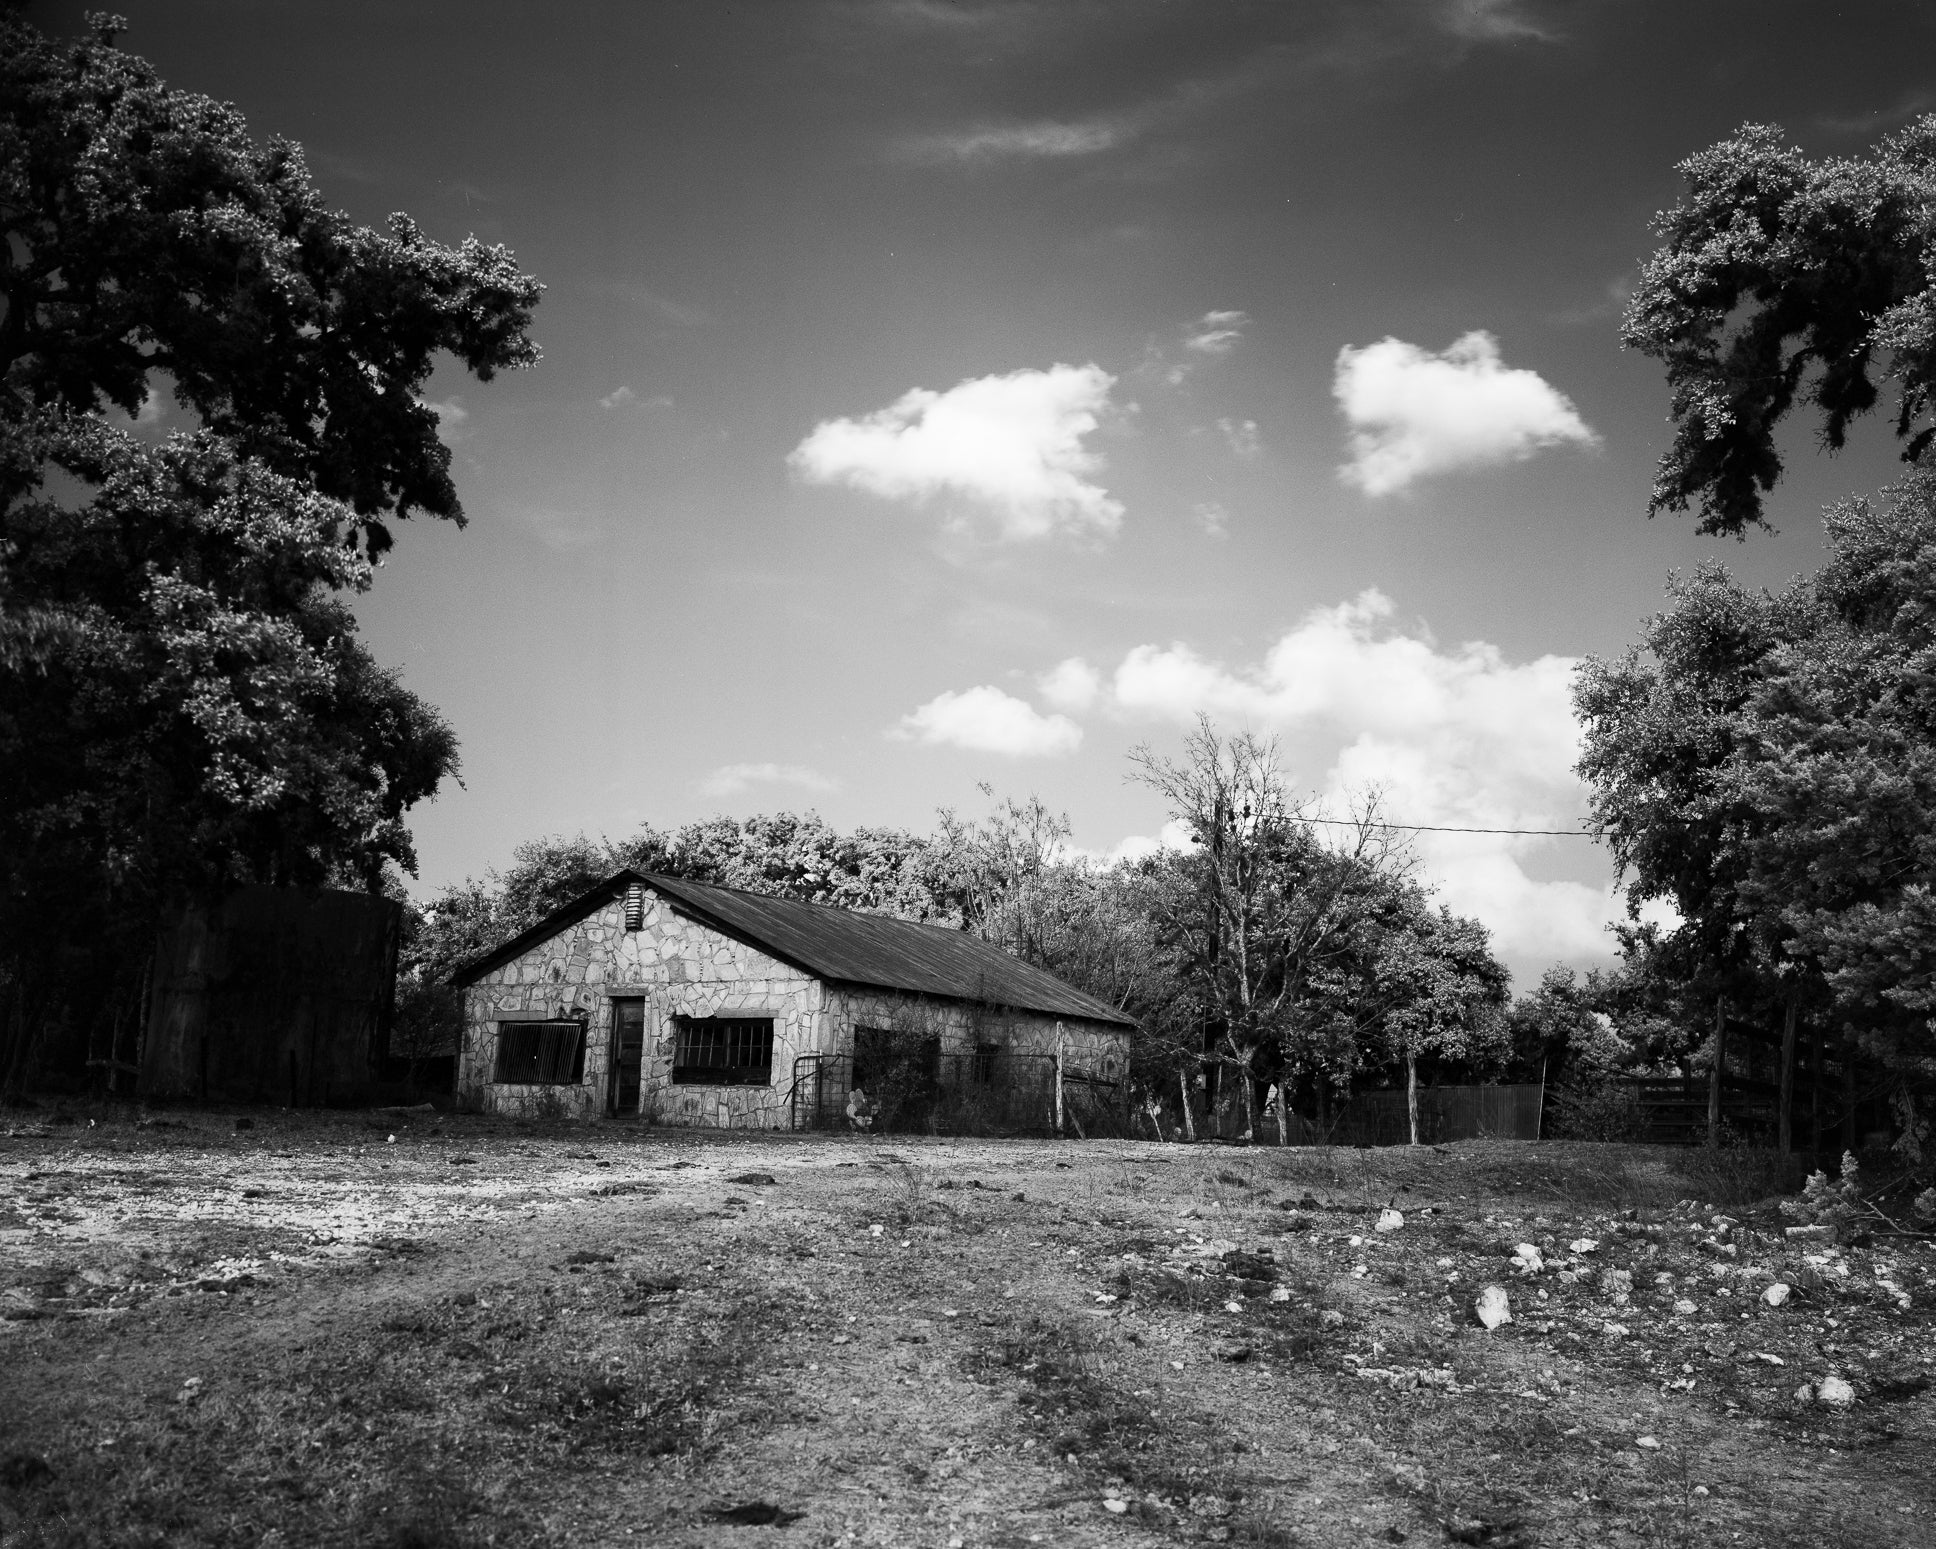 The Old Stone House In Infrared